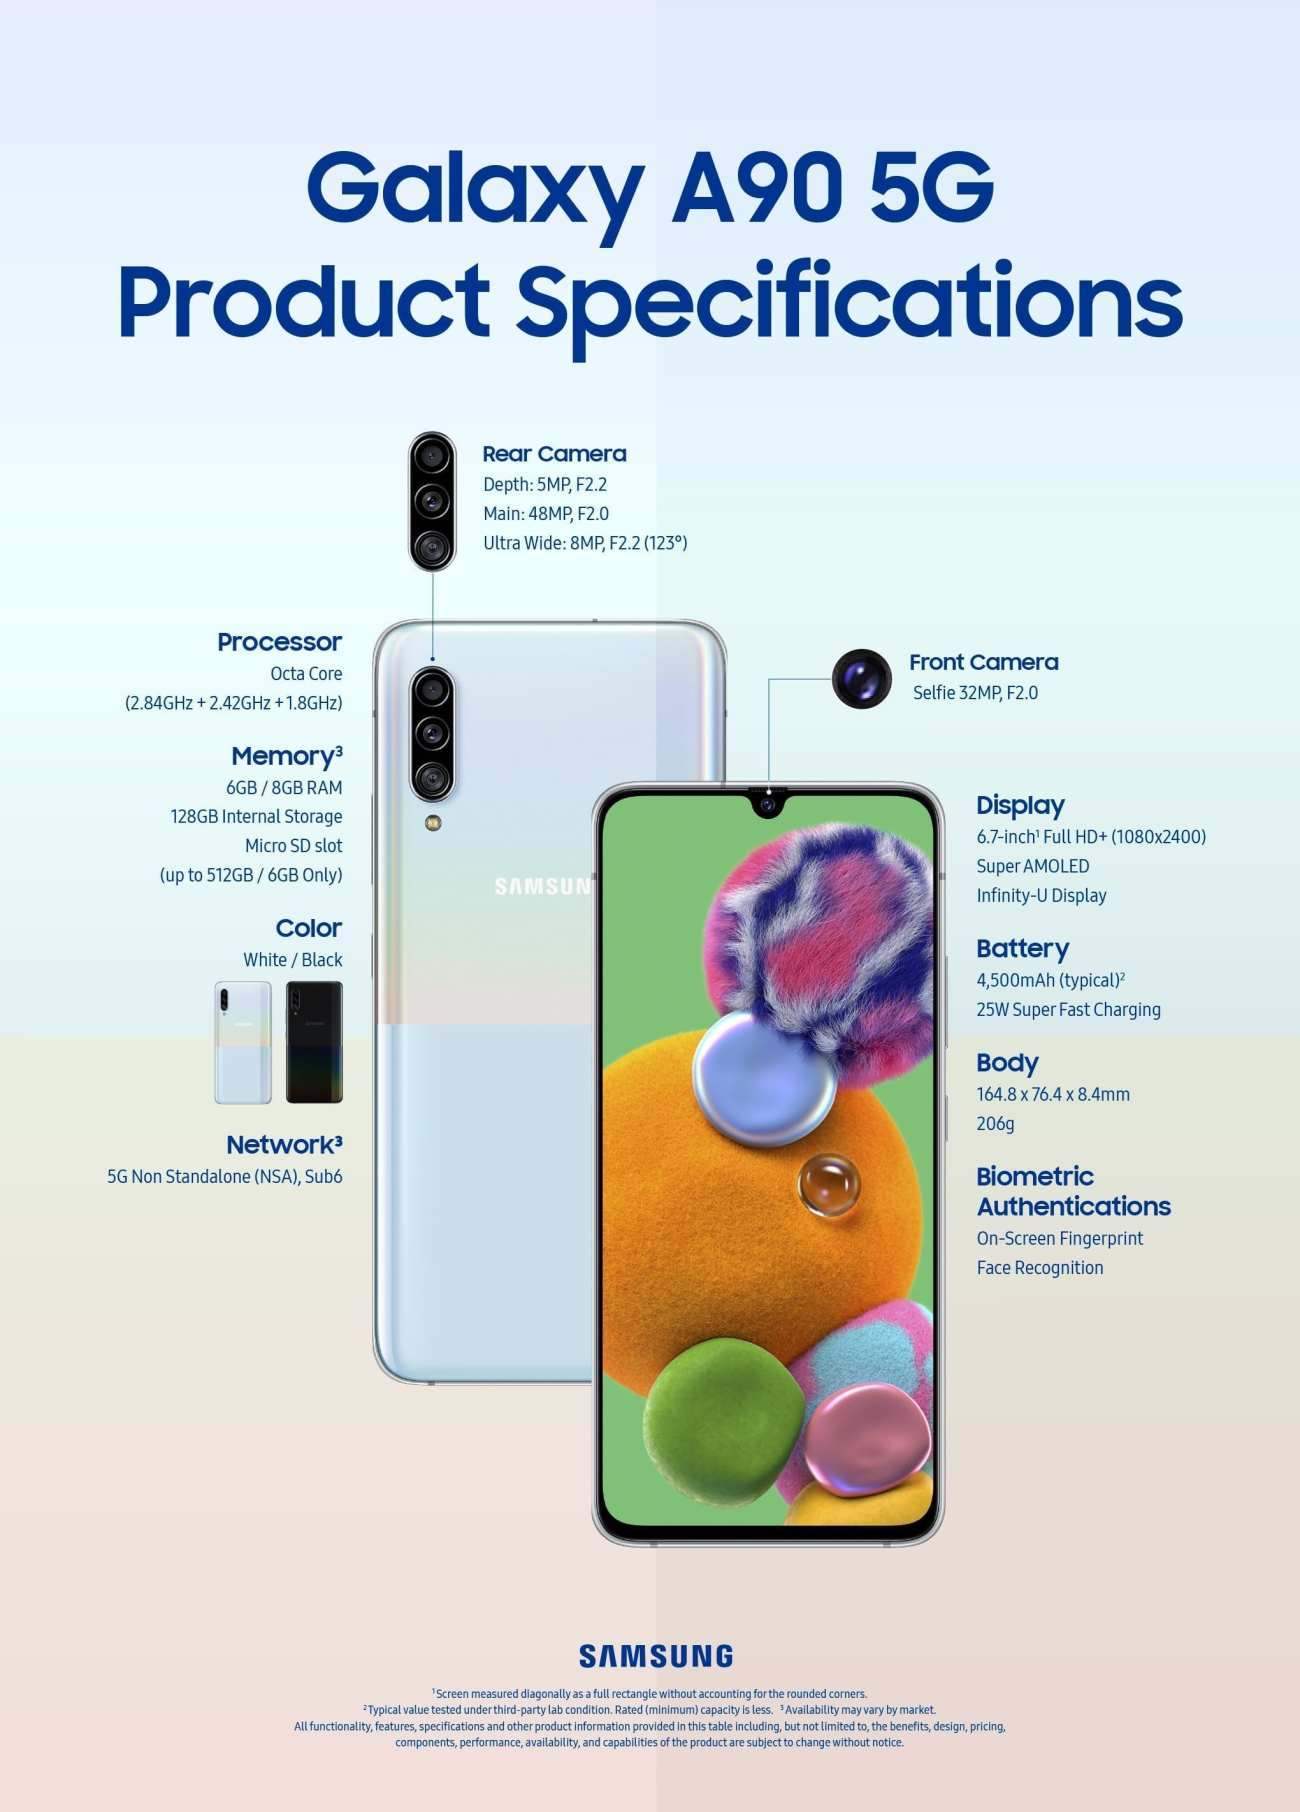 Samsung Galaxy A90 5G specifications